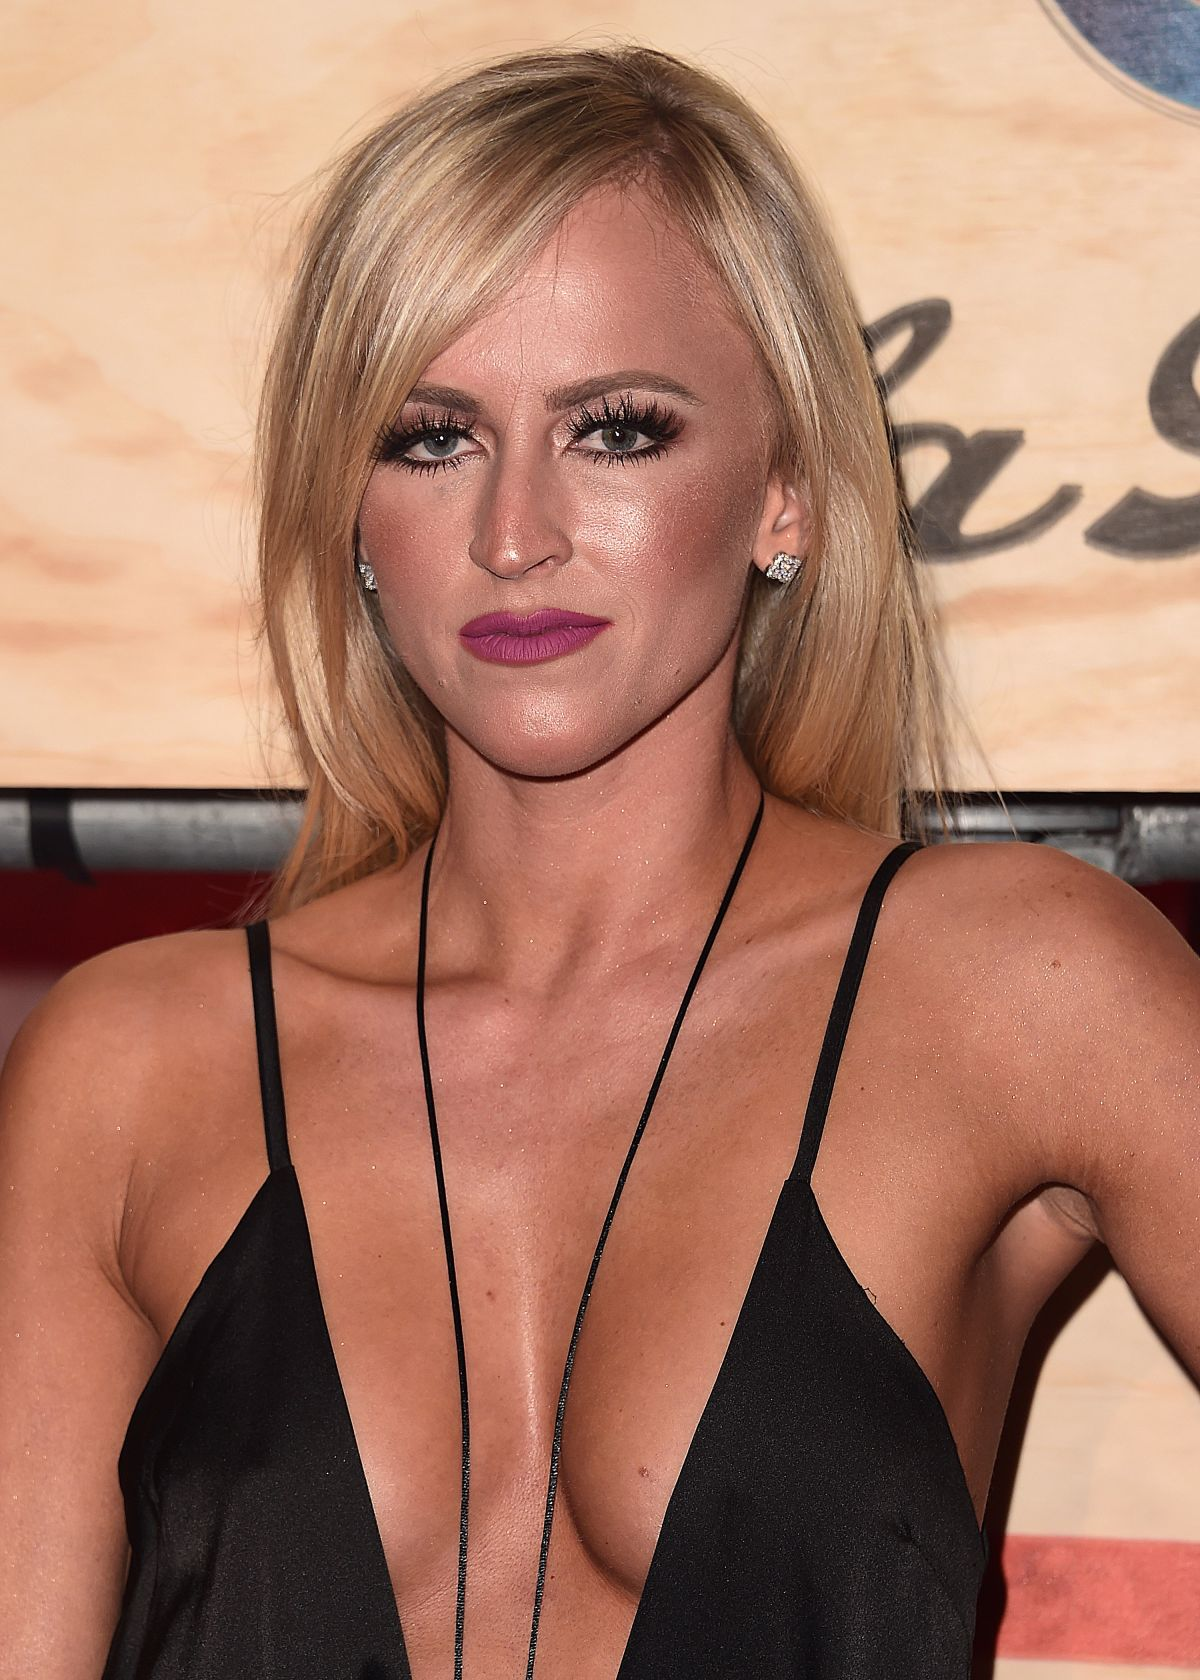 Summer Rae Sexy Boobs Pictures in Black Dress